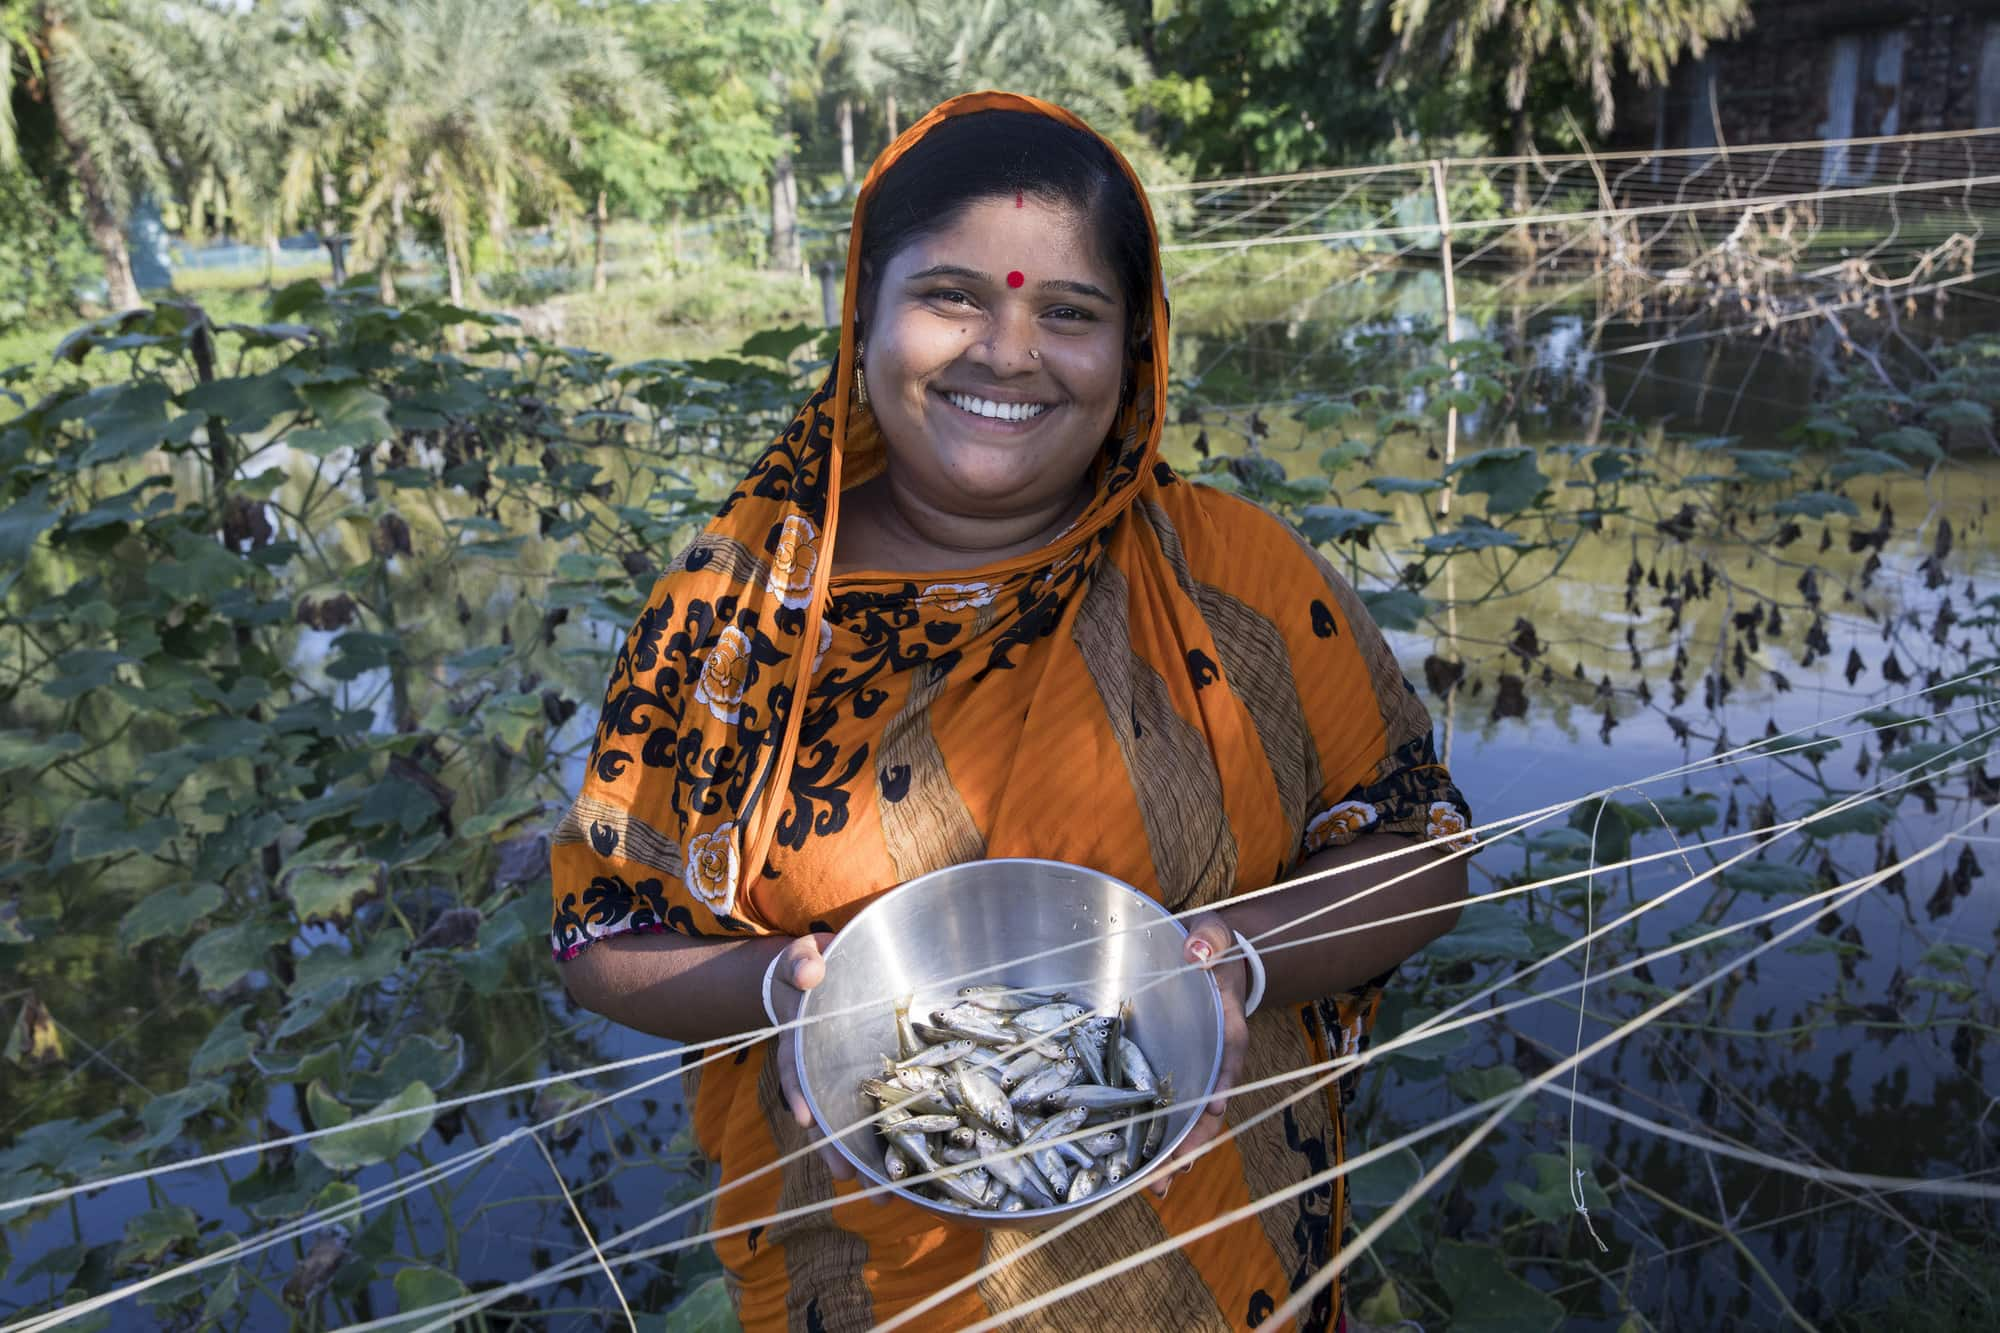 Fish farmer Champa Debnath poses with Mola from her pond in the Khulna District of Bangladesh. Photo by Habibul Haque.